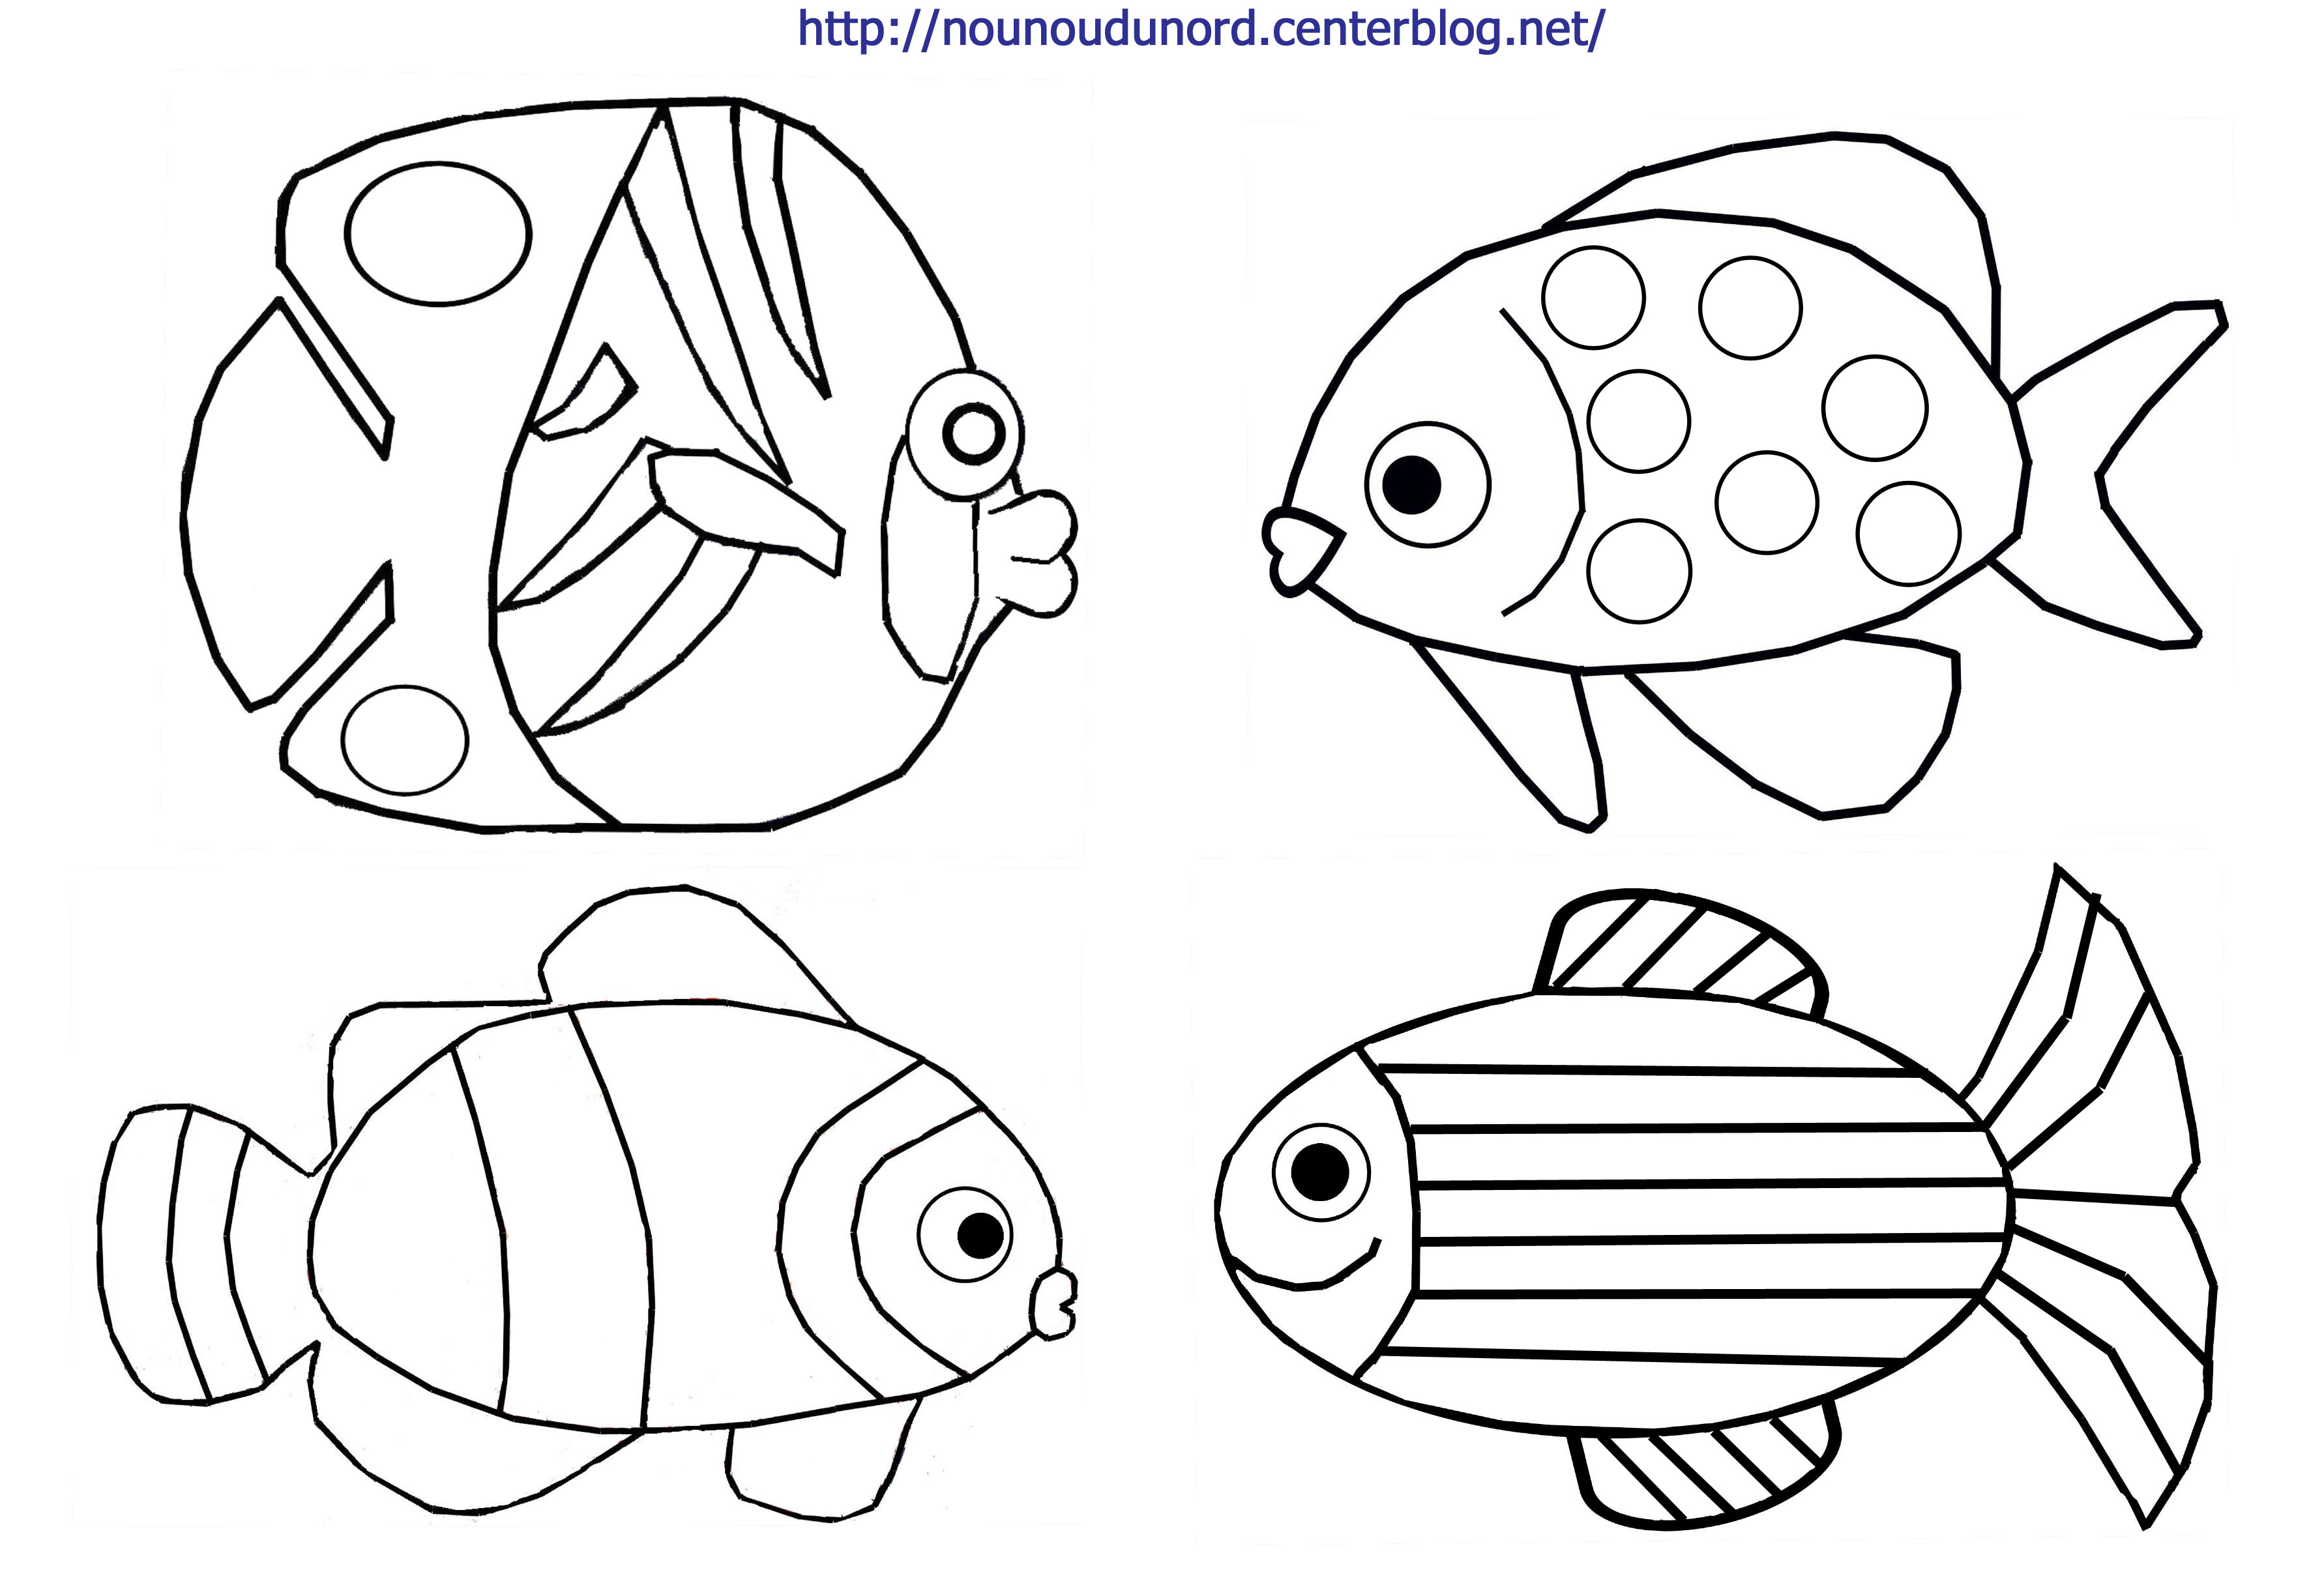 94 dessins de coloriage poisson 1 avril imprimer - Dessin poisson facile ...